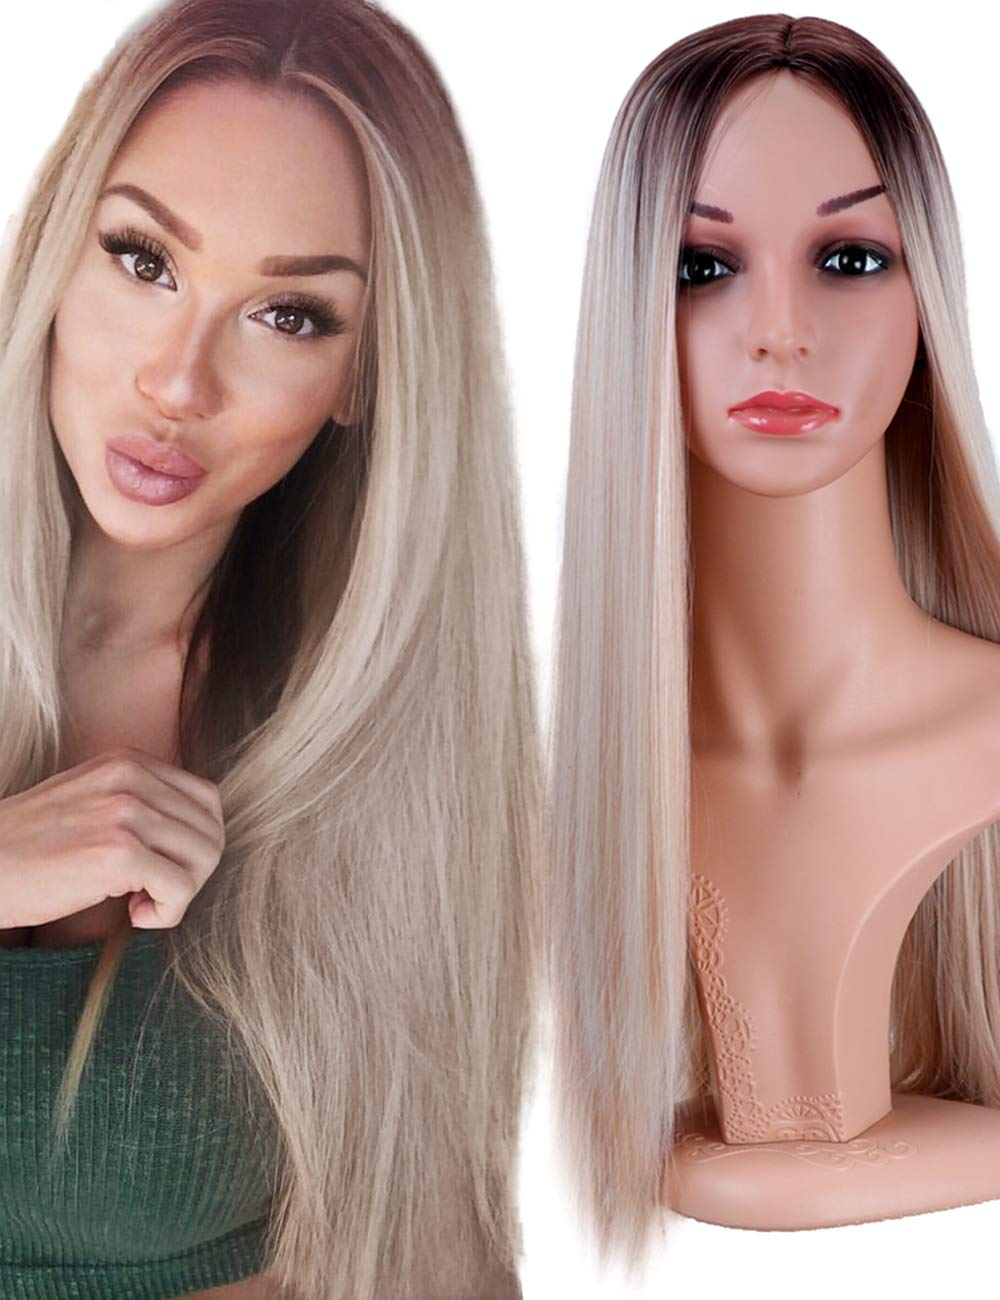 Fani Wigs Long Straight Blond Ombre Wigs for Women Dark Roots Middle Part Synthetic Full Wig Cosplay Wigs with Free Wig Cap (Ash Blonde) by fani